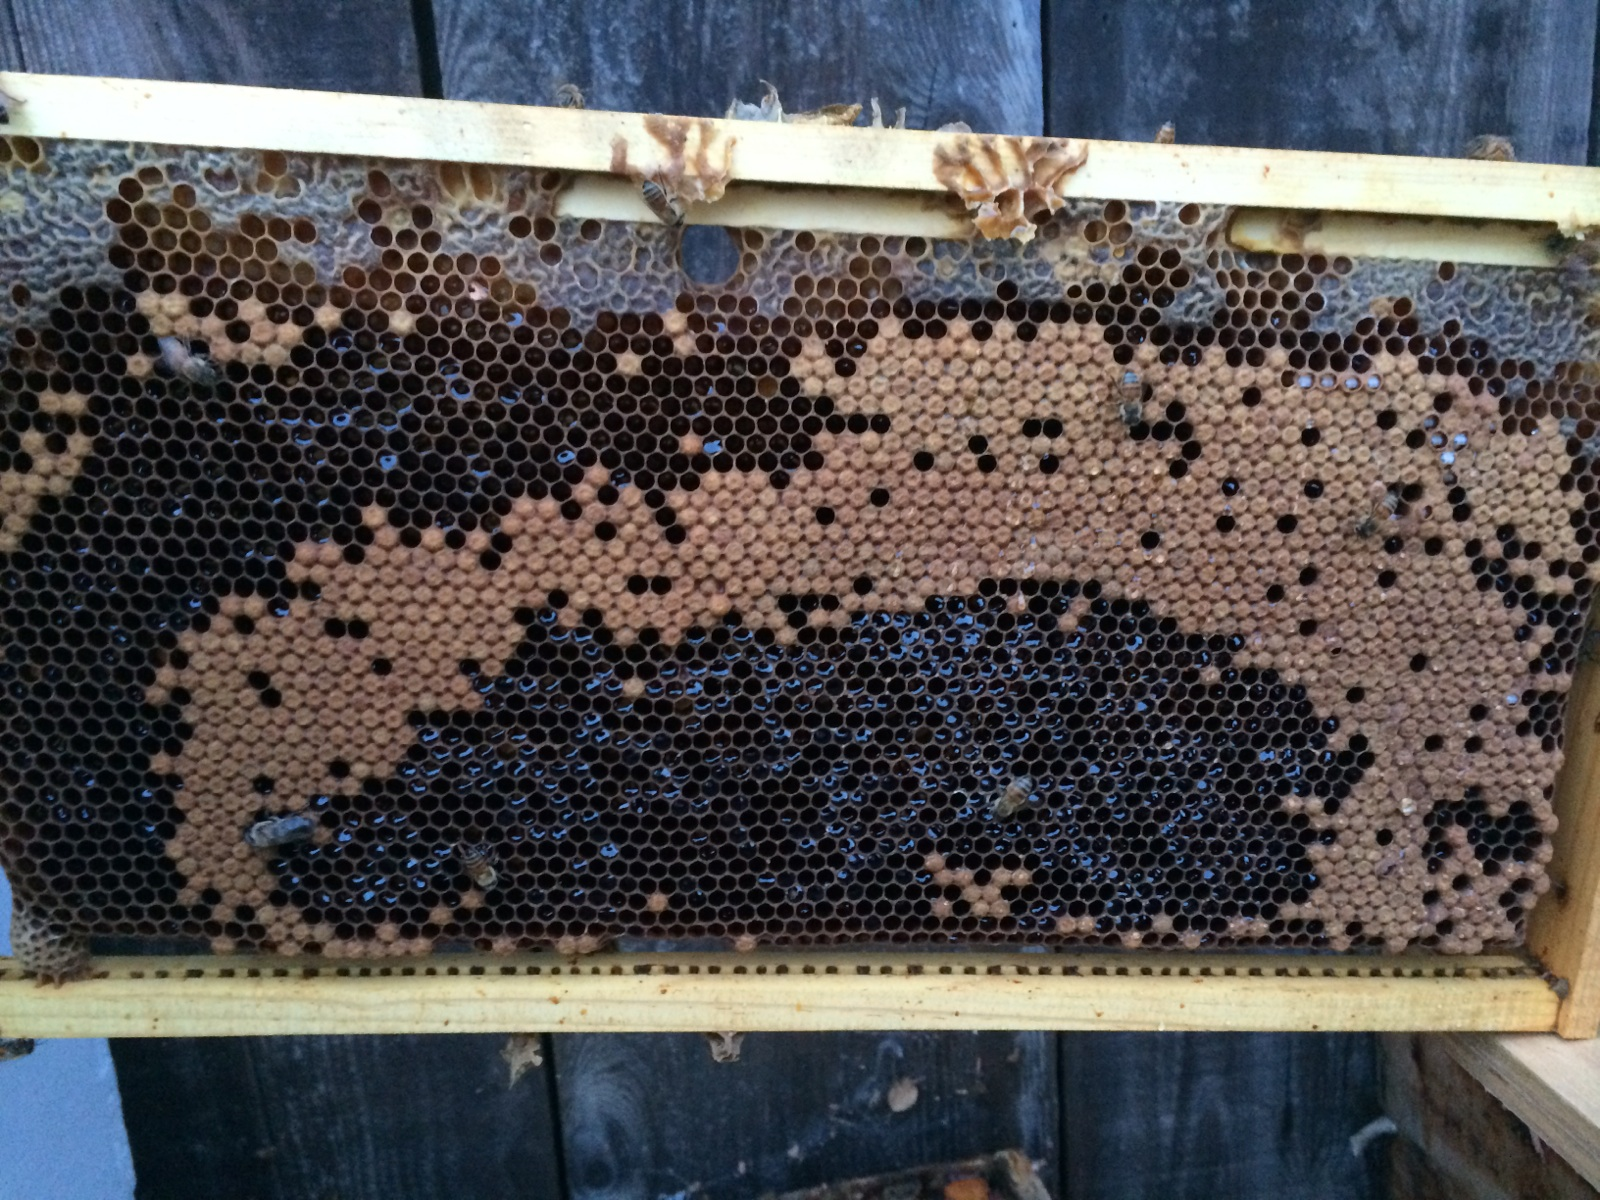 Cranky Bees because brood nest backfilling with honey, triggering swarming instinct